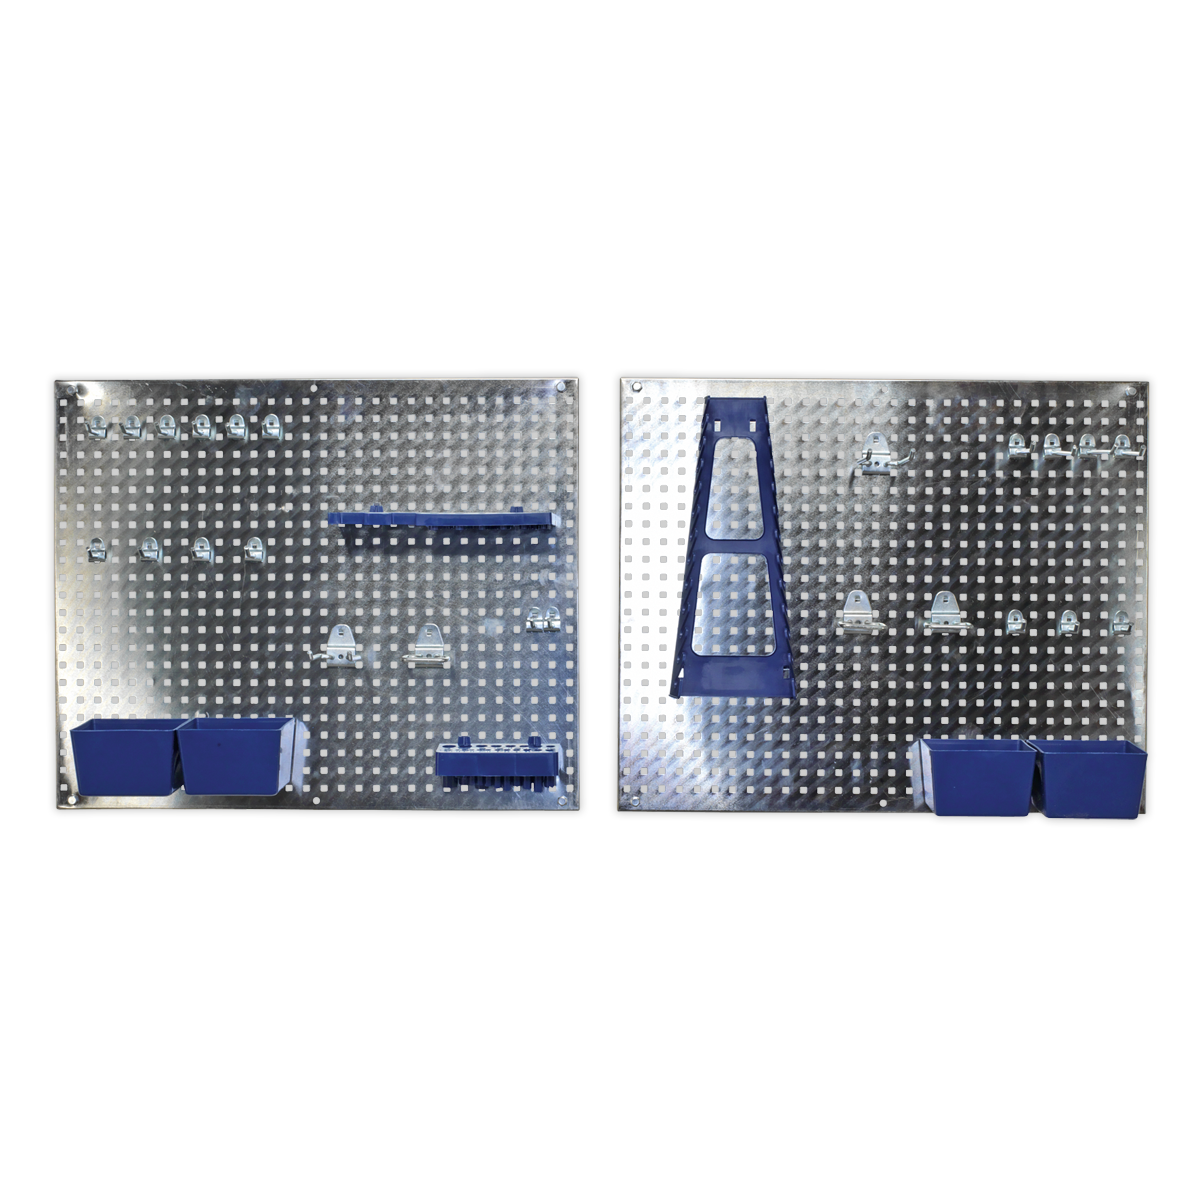 Wall Storage Pegboard Set 34pc Sealey S01102 by Sealey